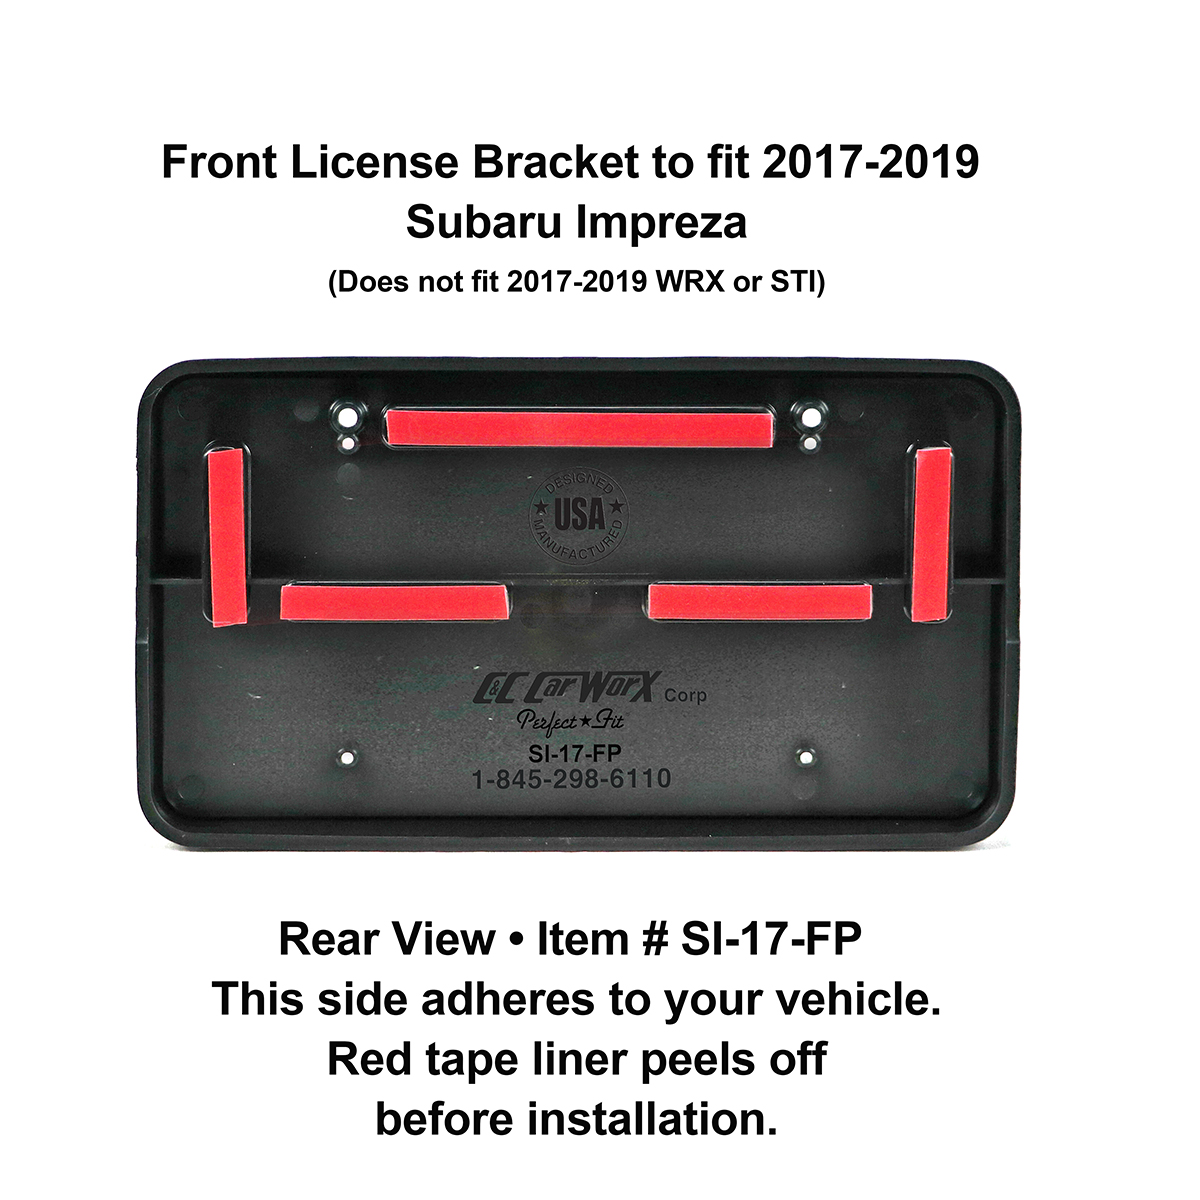 Rear View showing red tape liner which peels off before installation: Front License Bracket SI-17-FP to fit 2017-2018 Subaru Impreza (excluding WRX & STI models) custom designed and manufactured by C&C CarWorx